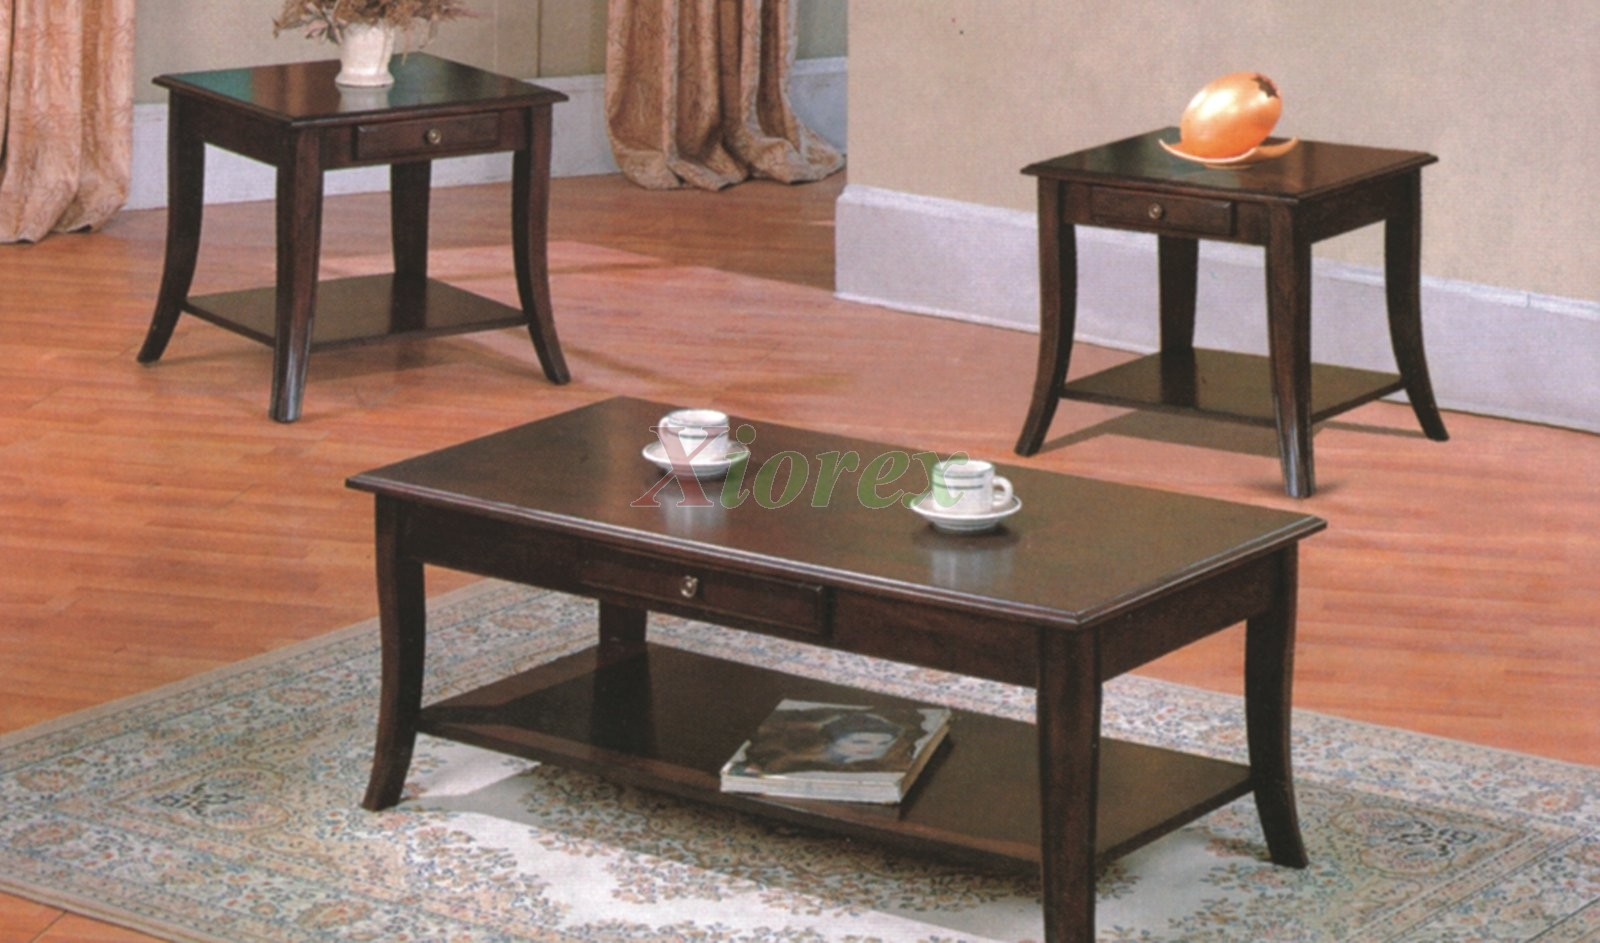 Wood coffee tables with drawers - Wood Coffee Tables With Drawers